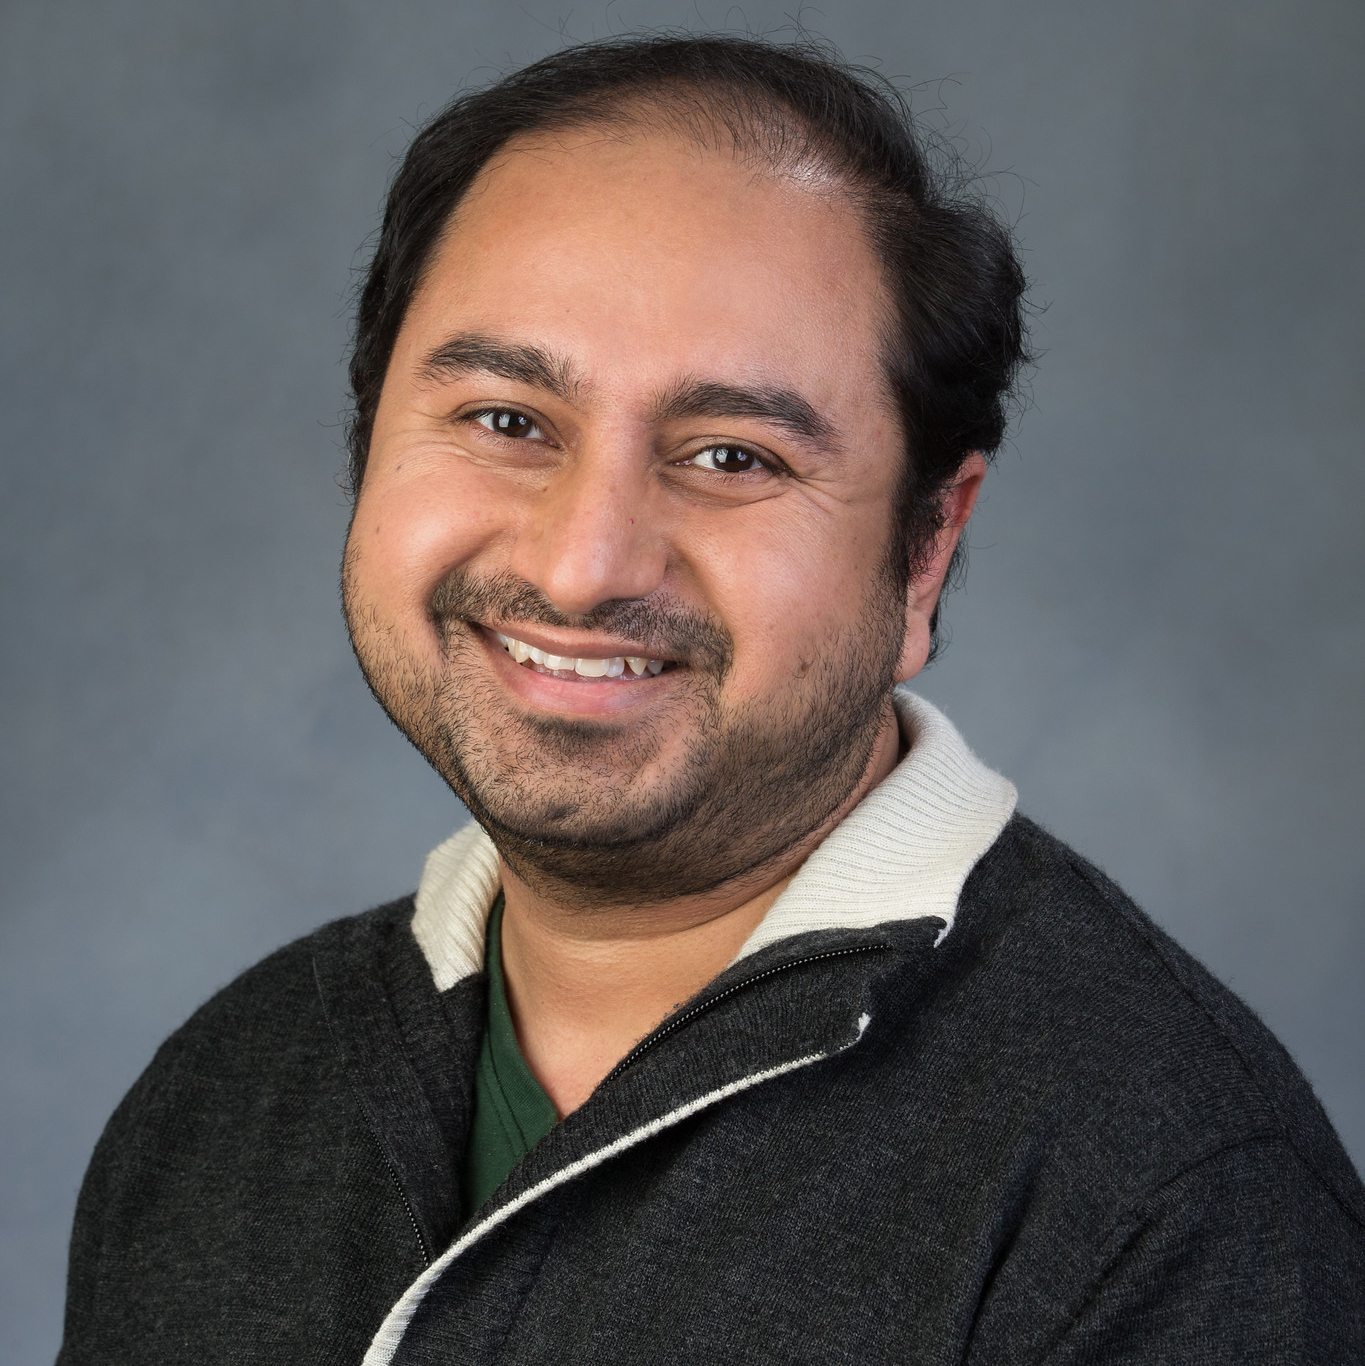 Academic headshot; An Indian man with short, ear length, straight, black hair, smiles directly at the camera. He is wearing a dark green shirt and a black, zip-up sweater with a white collar